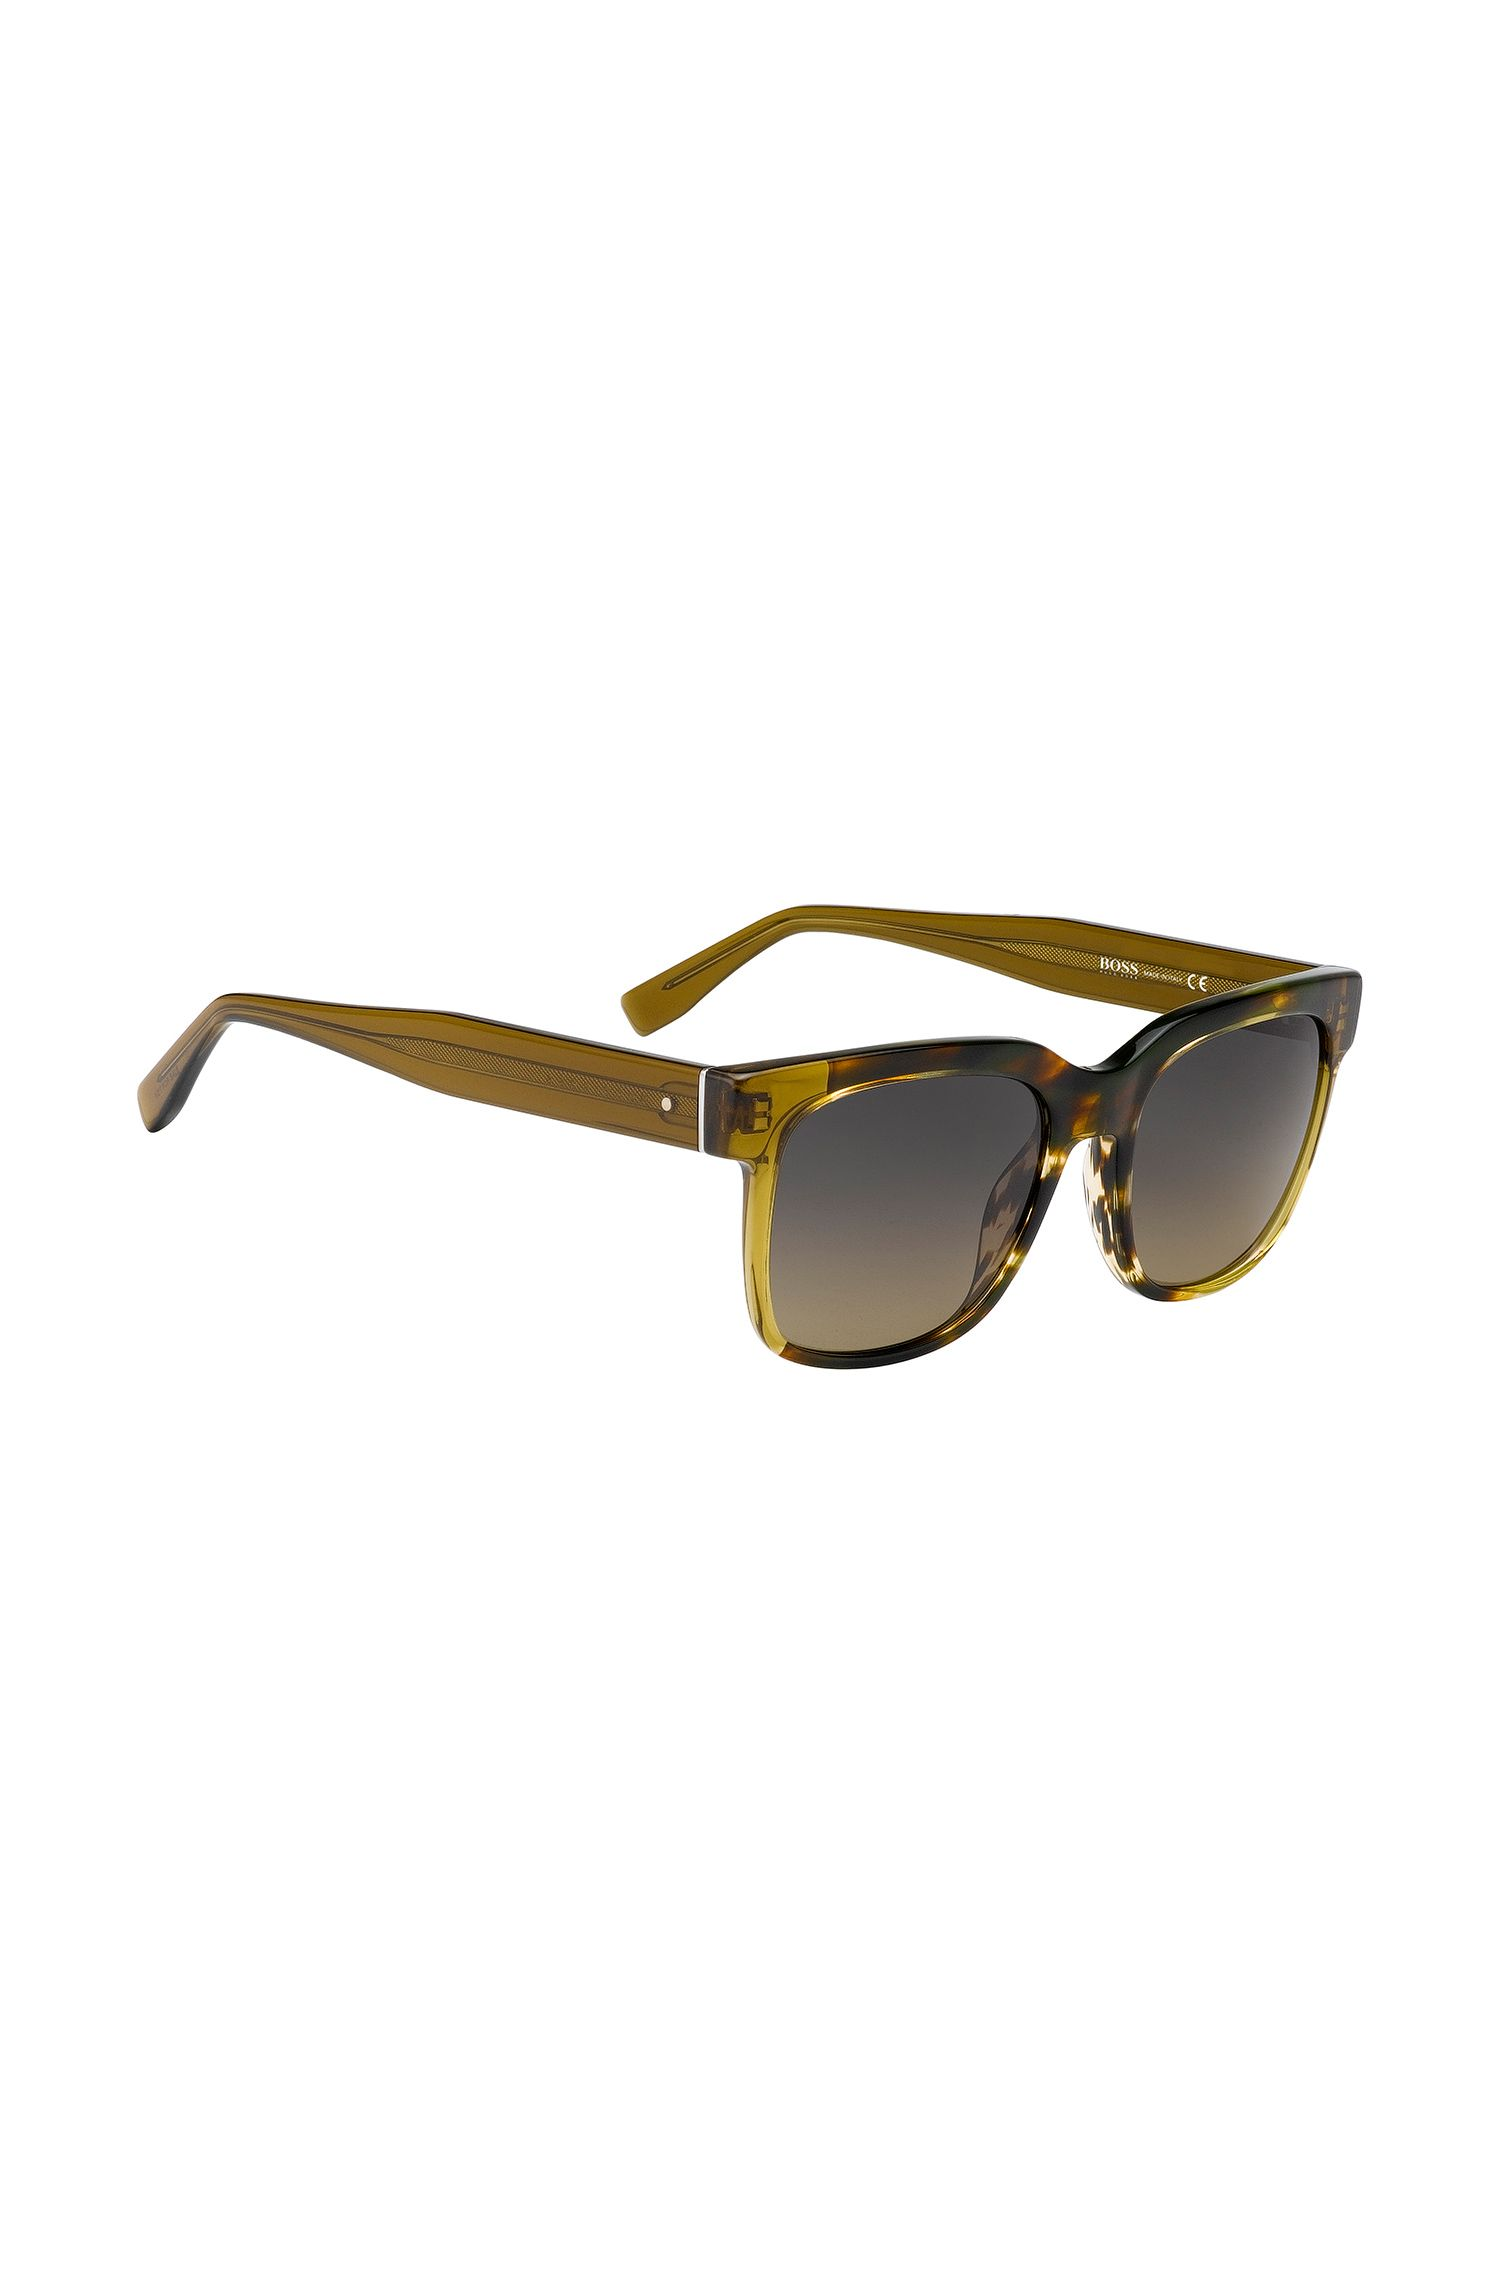 Gradient Lens Acetate Sunglasses | BOSS 0735S